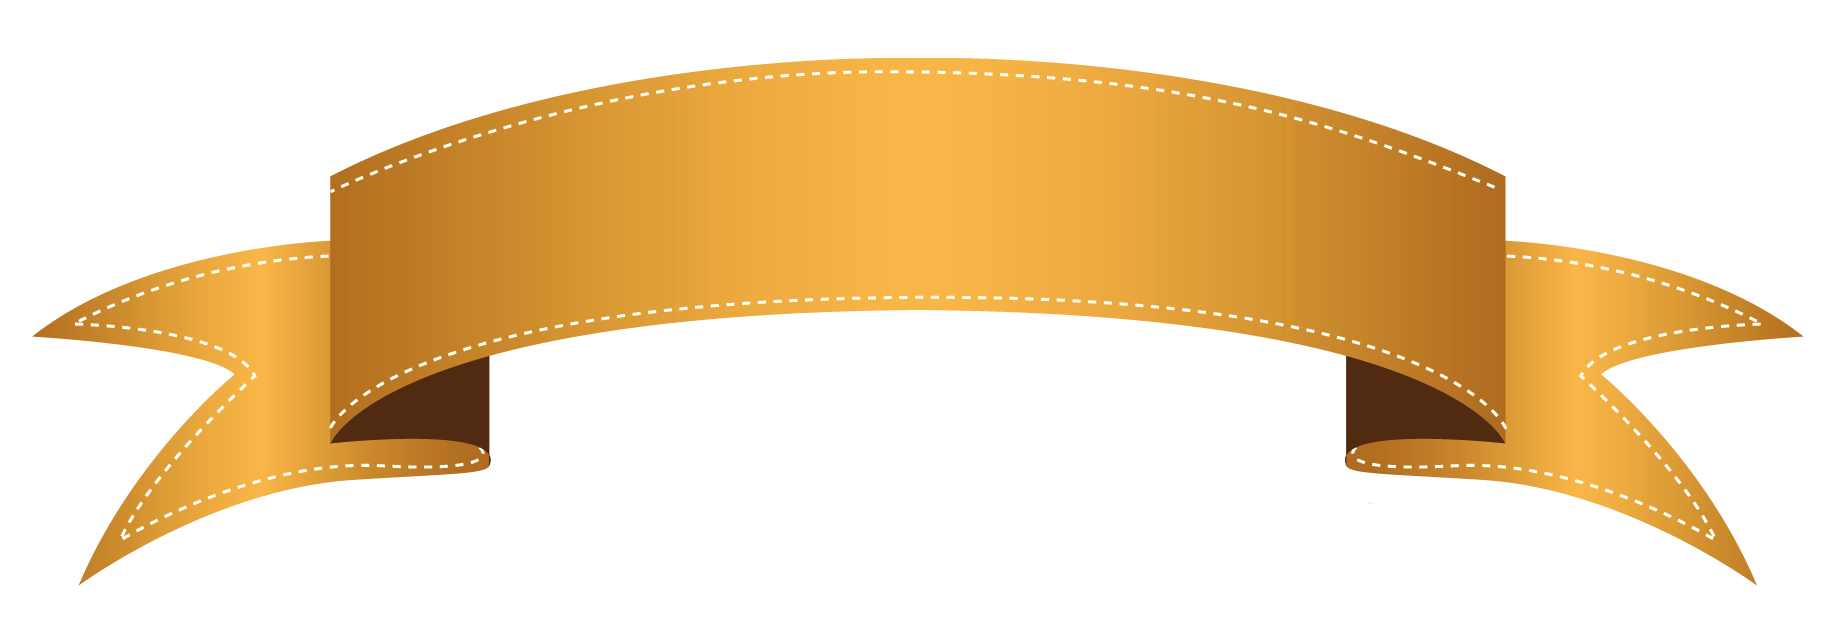 png free stock Banners transparent ribbon. Orange banner png clipart